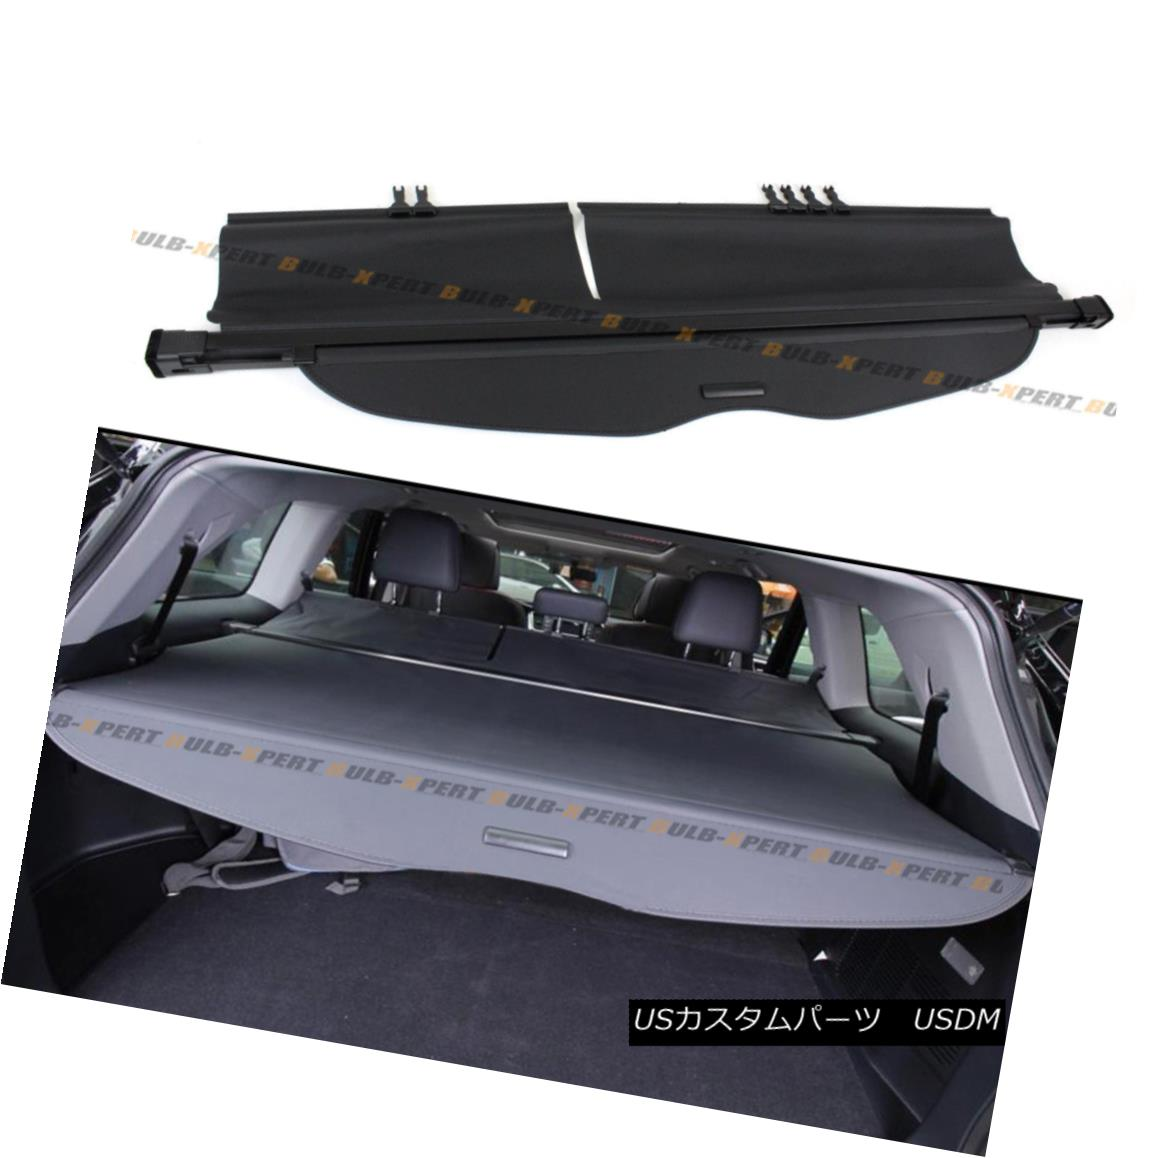 エアロパーツ For 2014-2017 Toyota Highlander OE Style Retractable Cargo Cover Luggage Shade 2014-2017 Toyota Highlander OEスタイルリトラクタブルカーゴカバー荷物シェード